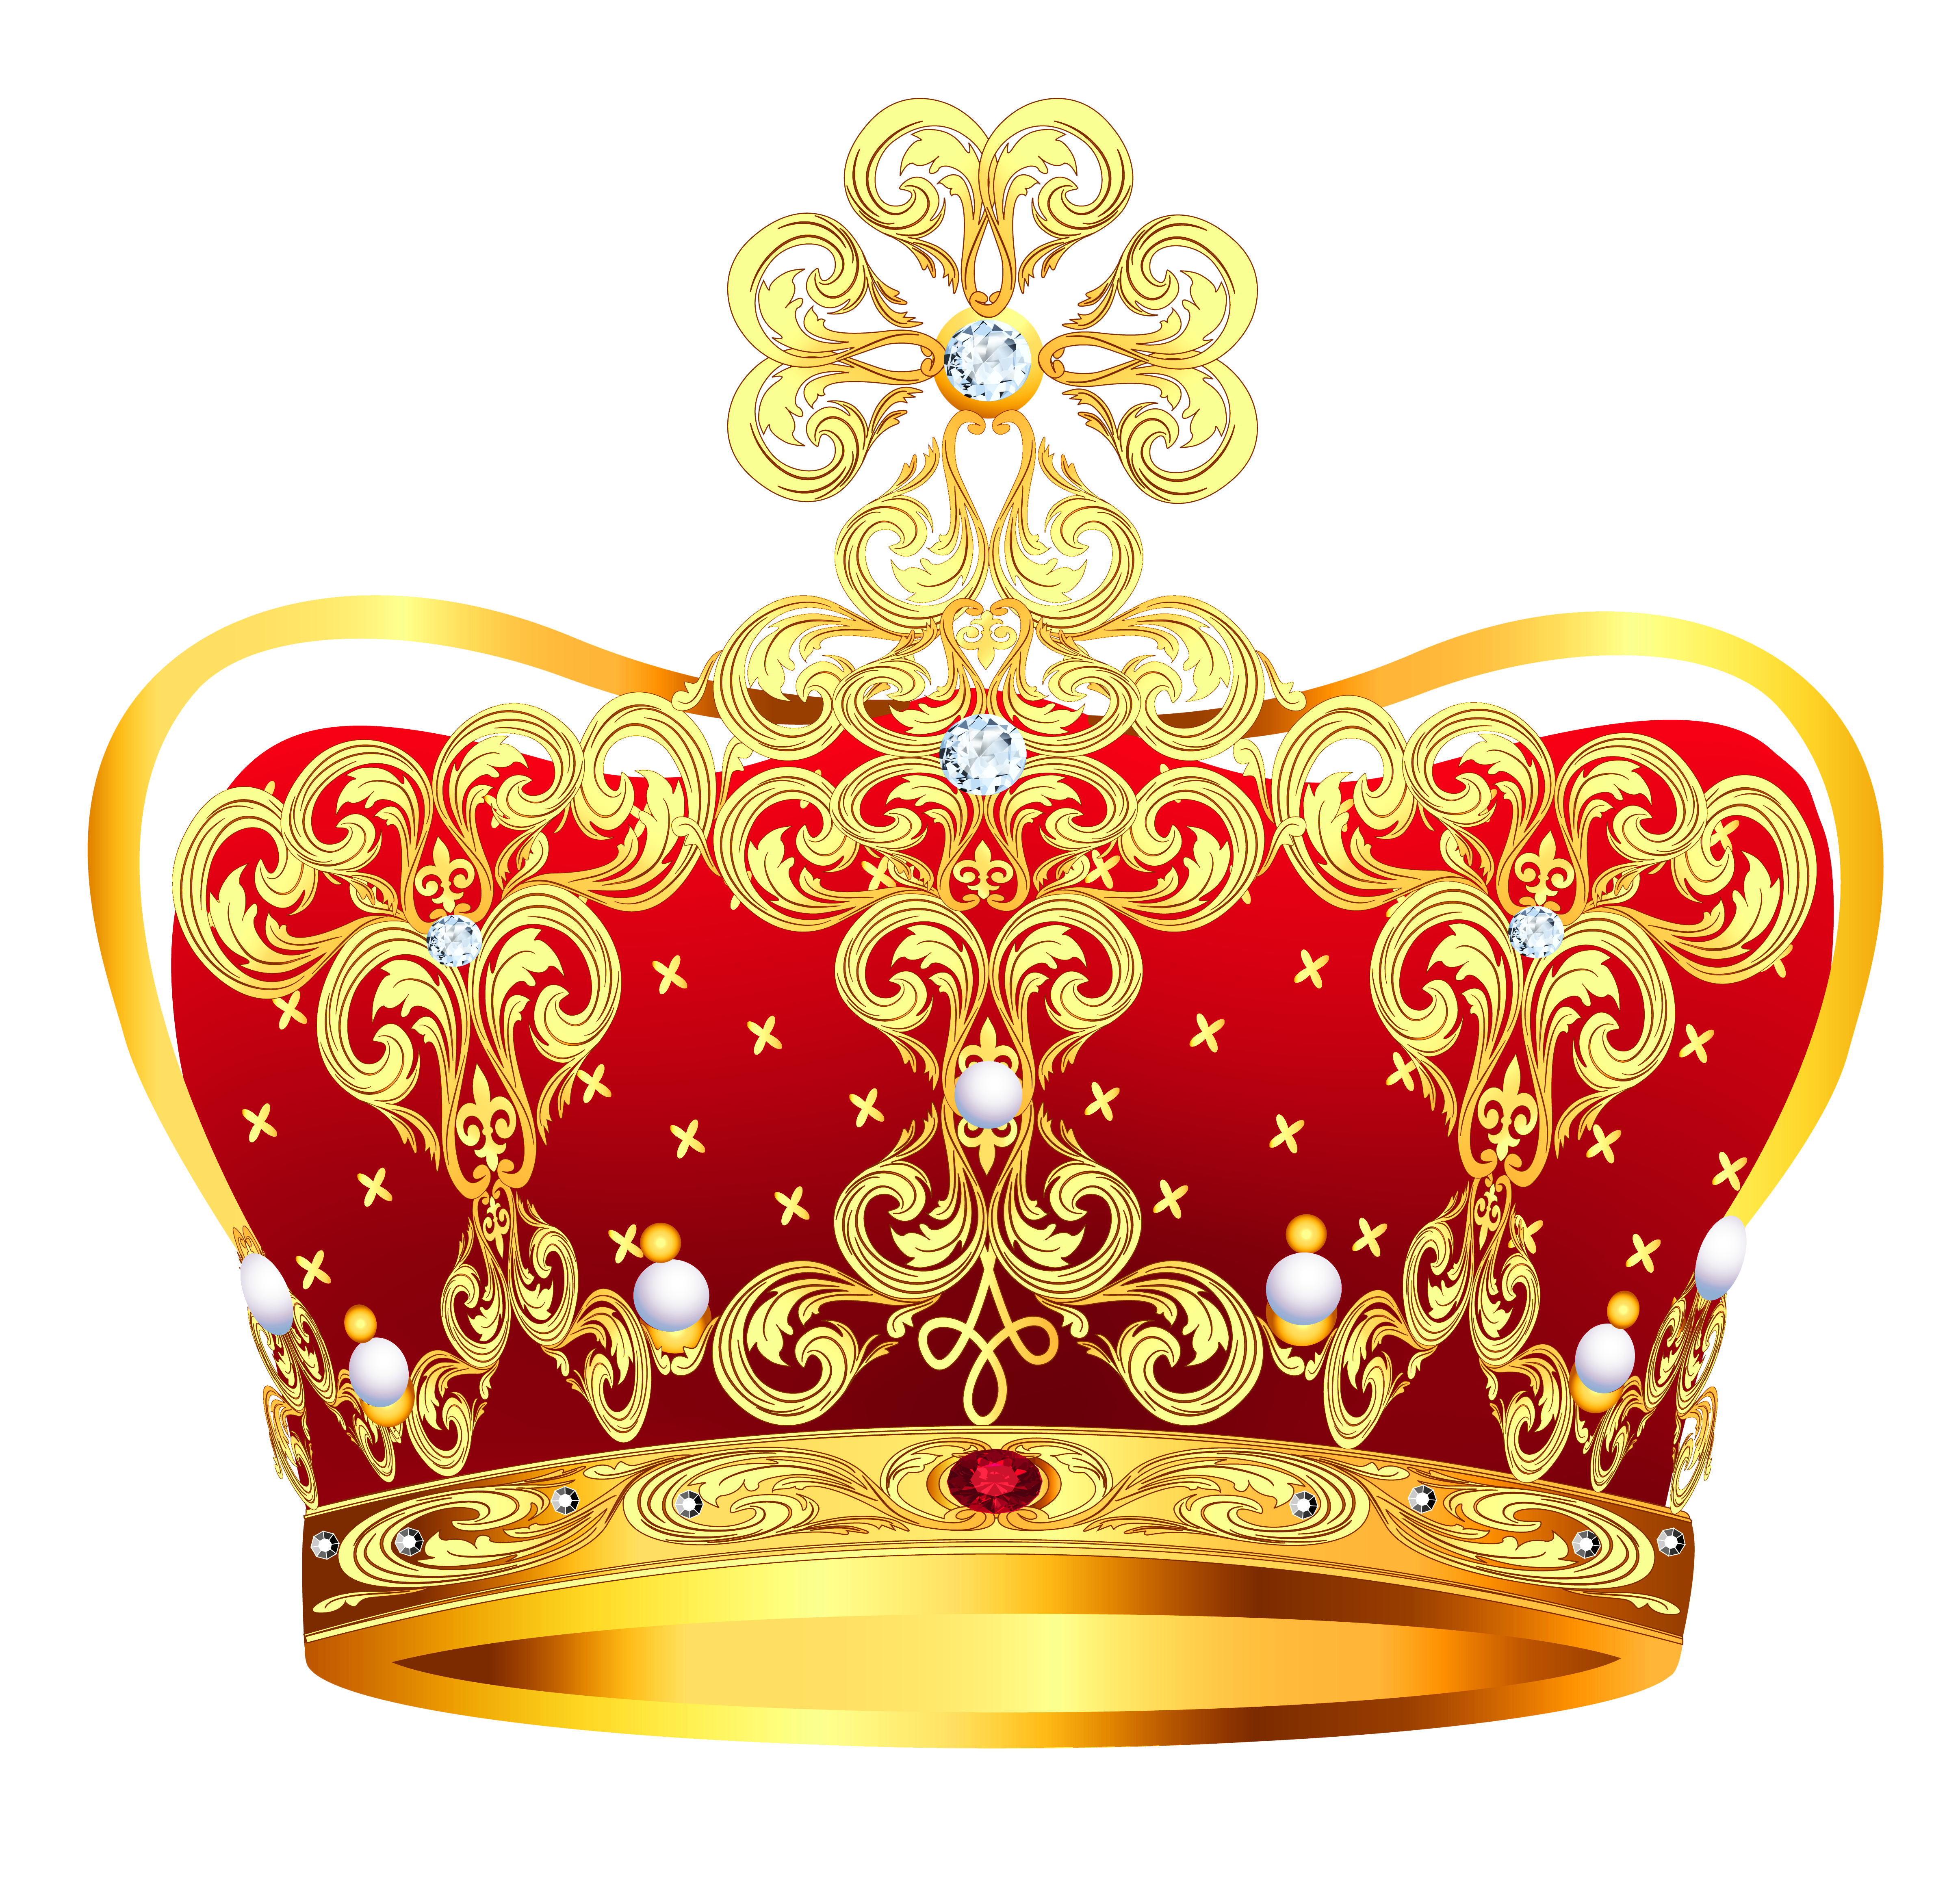 King and queen crown png. Images free download